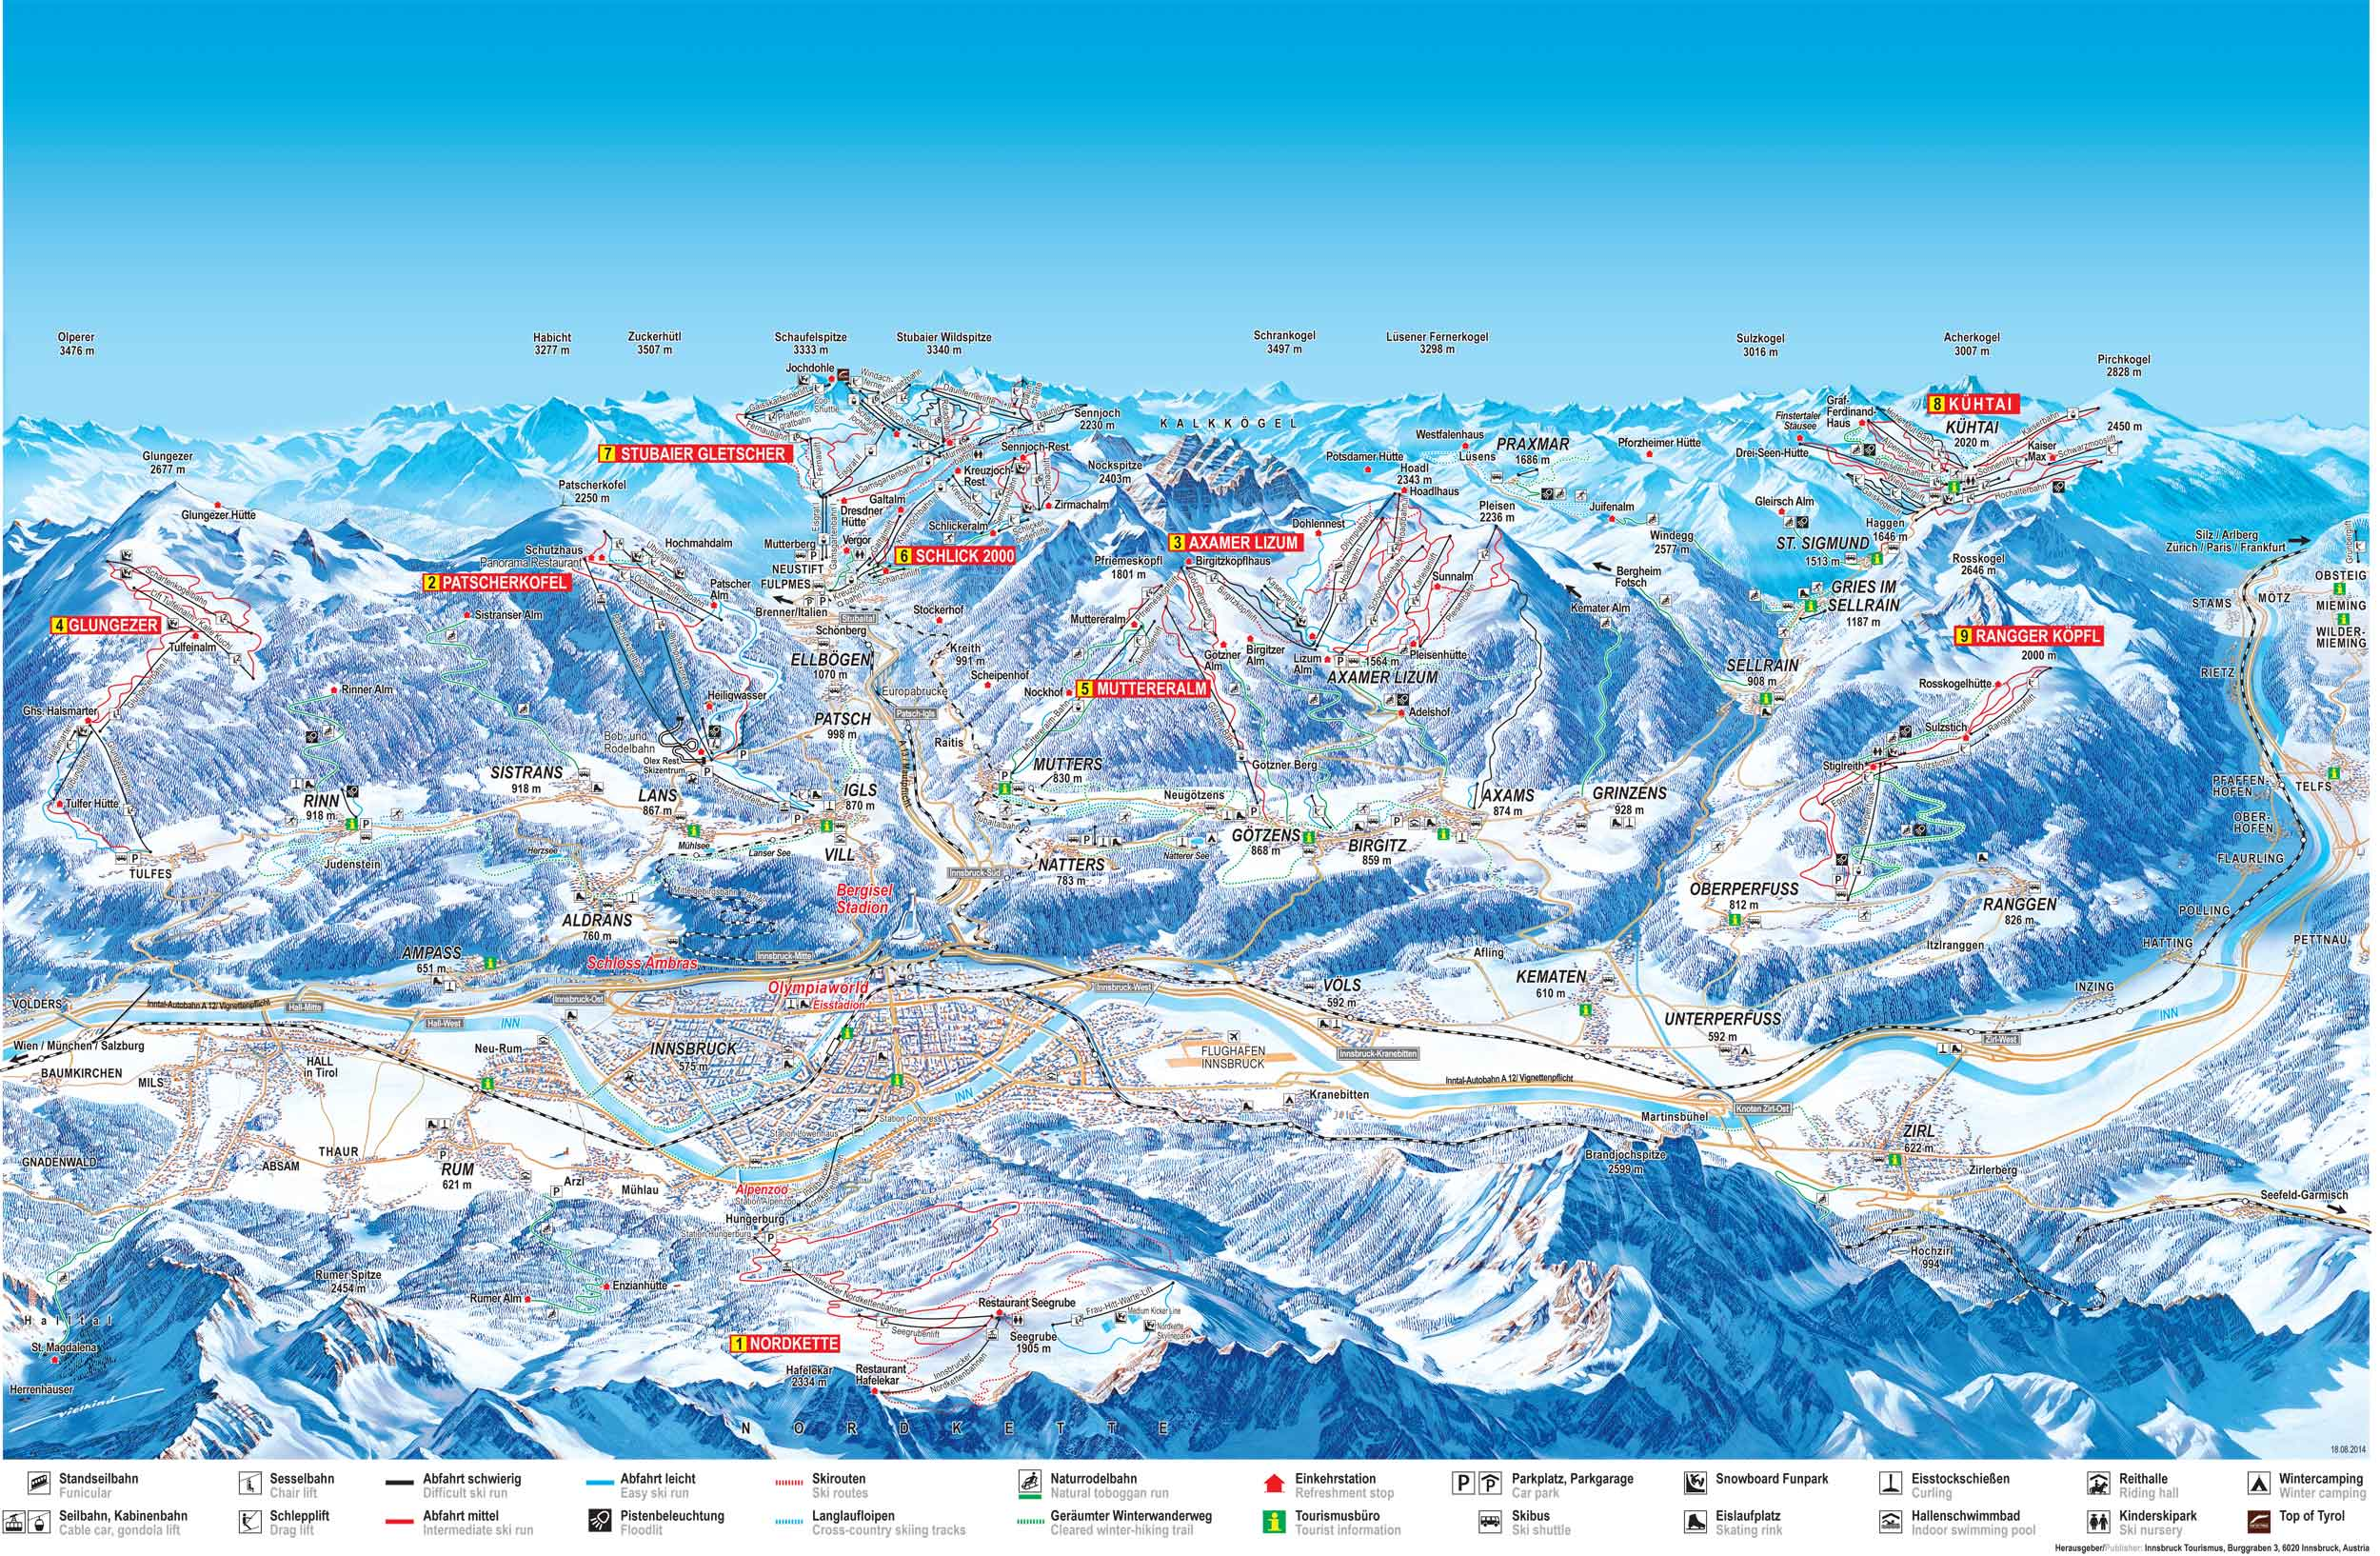 map of utah ski areas with Carte Des Pistes on Brighton Utah additionally Trail Maps besides 112 also 2008 11 01 archive together with Trail Map.